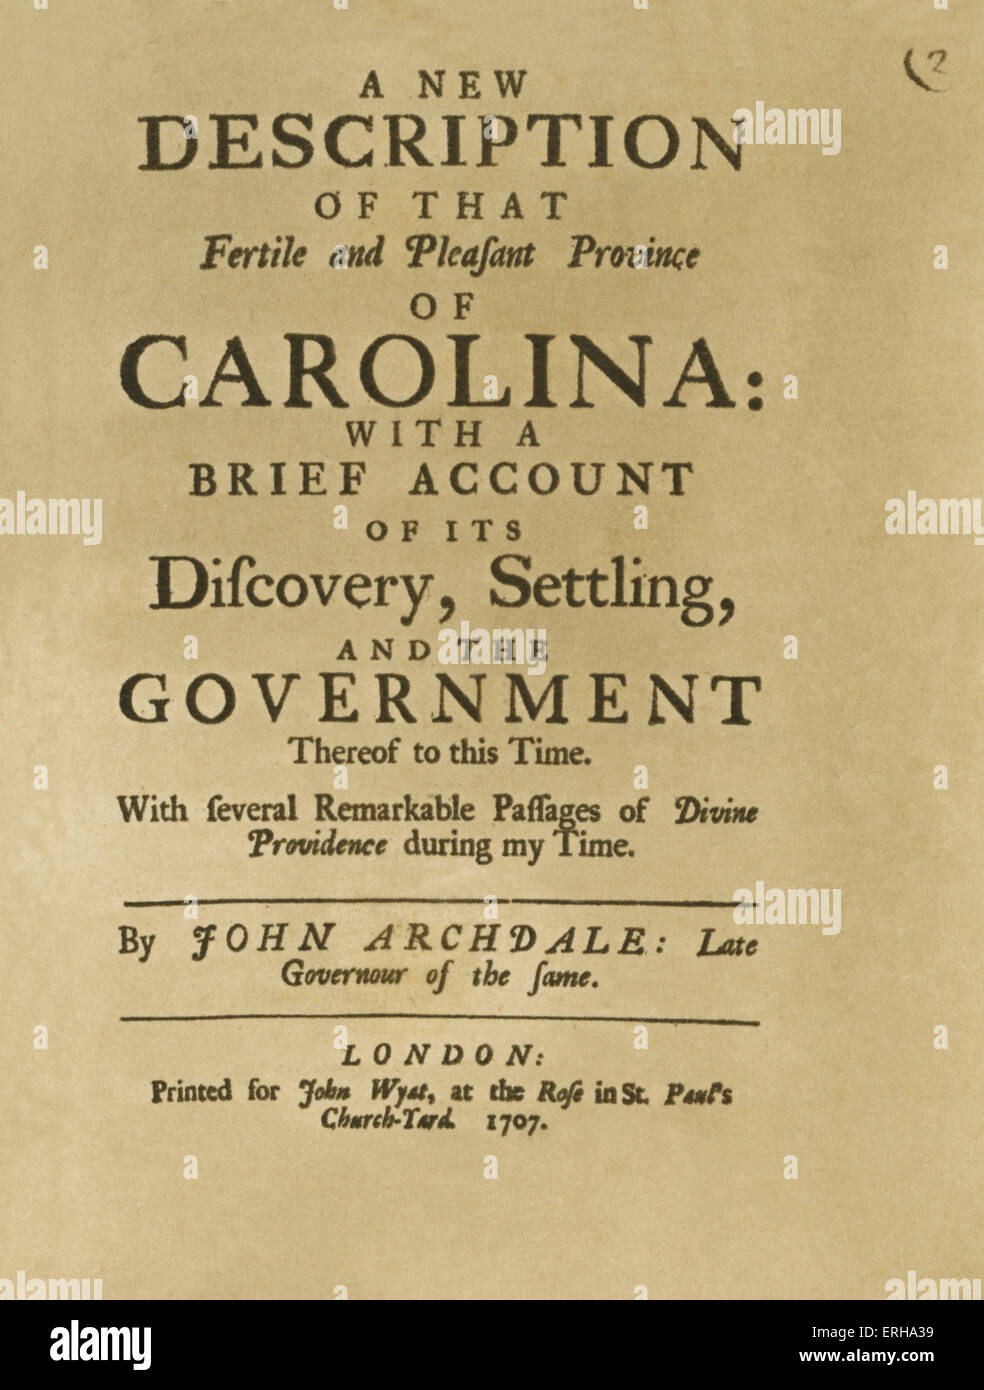 Titlepage: 'A New Description of that Fertile and Pleasant Province of Caroline: With a Brief Account of its - Stock Image